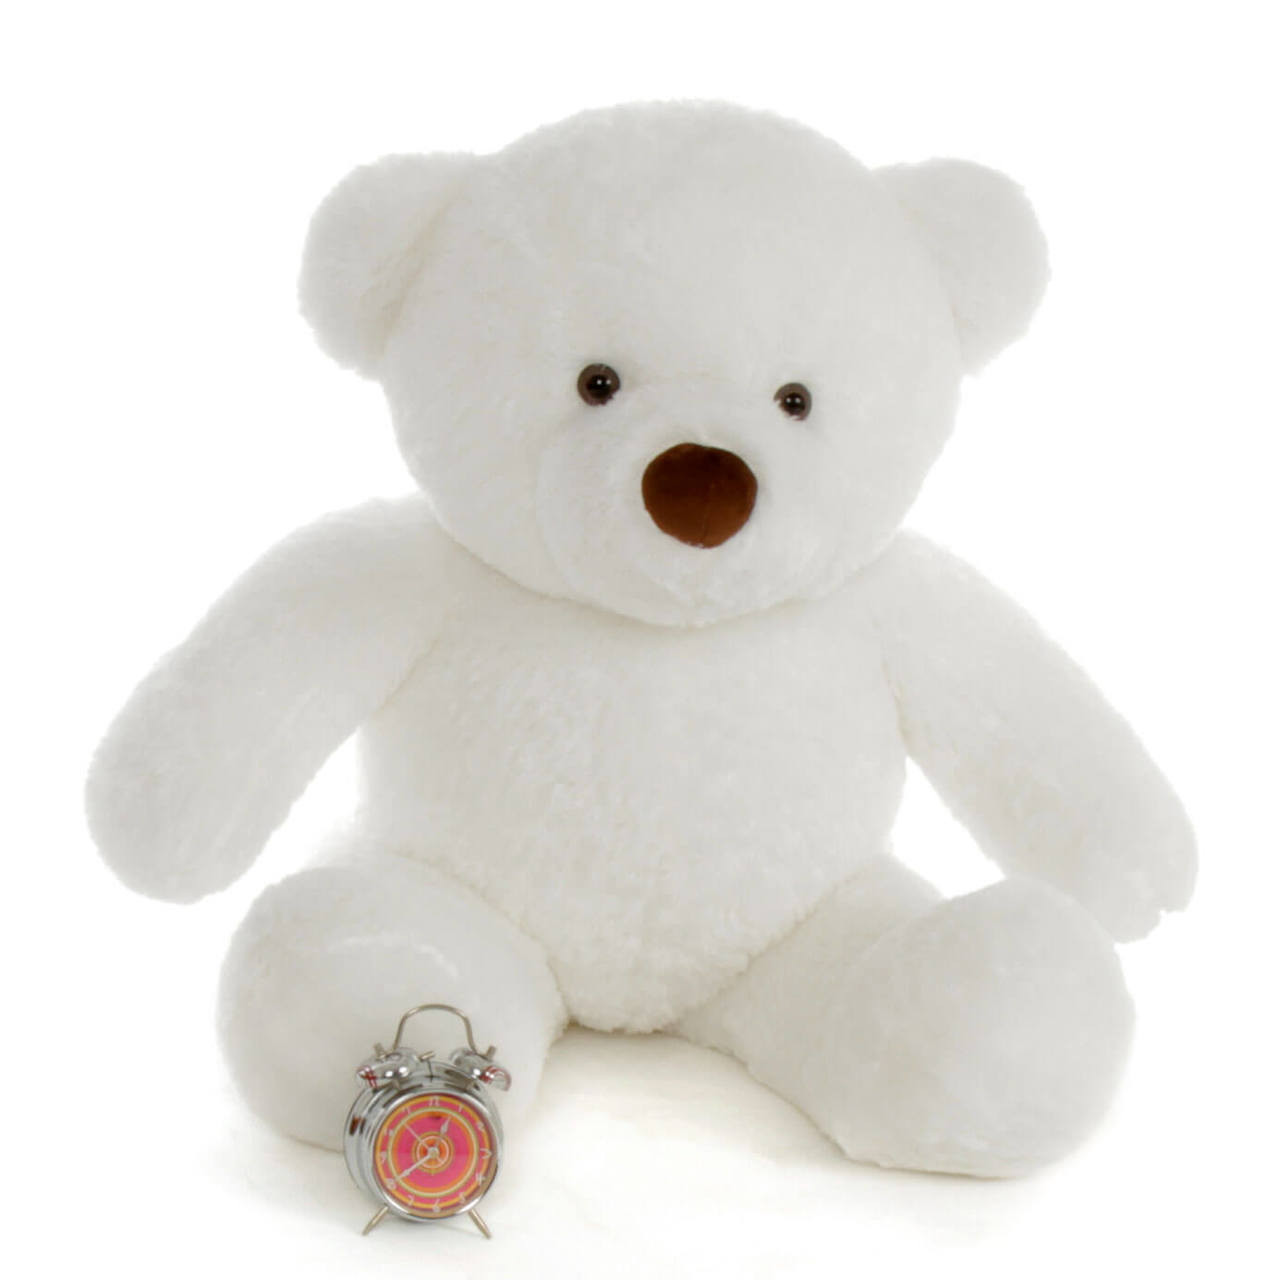 Sprinkle Chubs White Adorable Teddy Bear 3Ft (Clock NOT included)